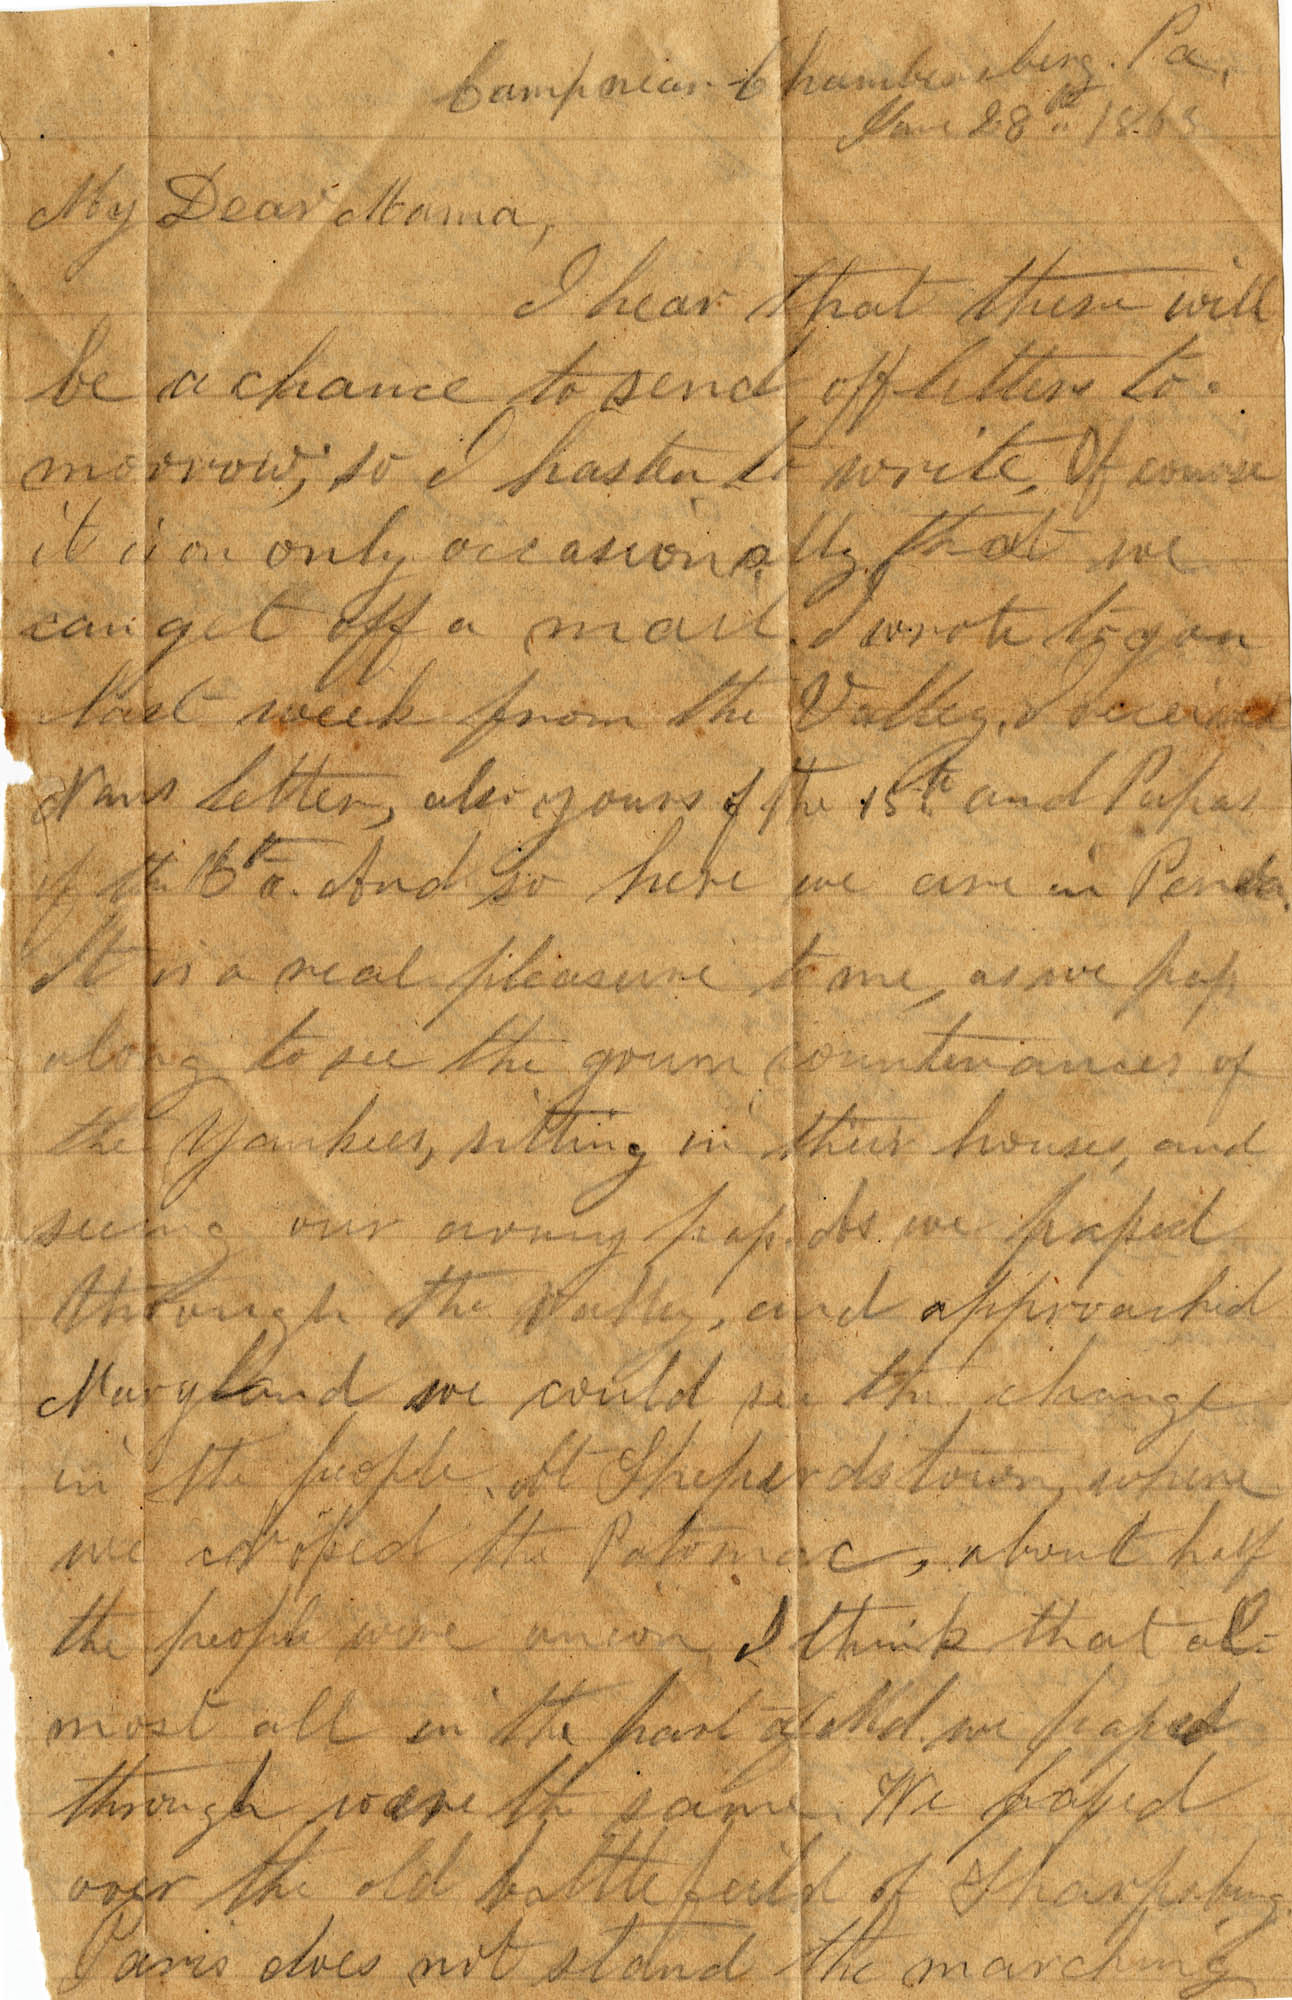 088. Willis Keith to Anna Bell Keith -- June 28, 1863